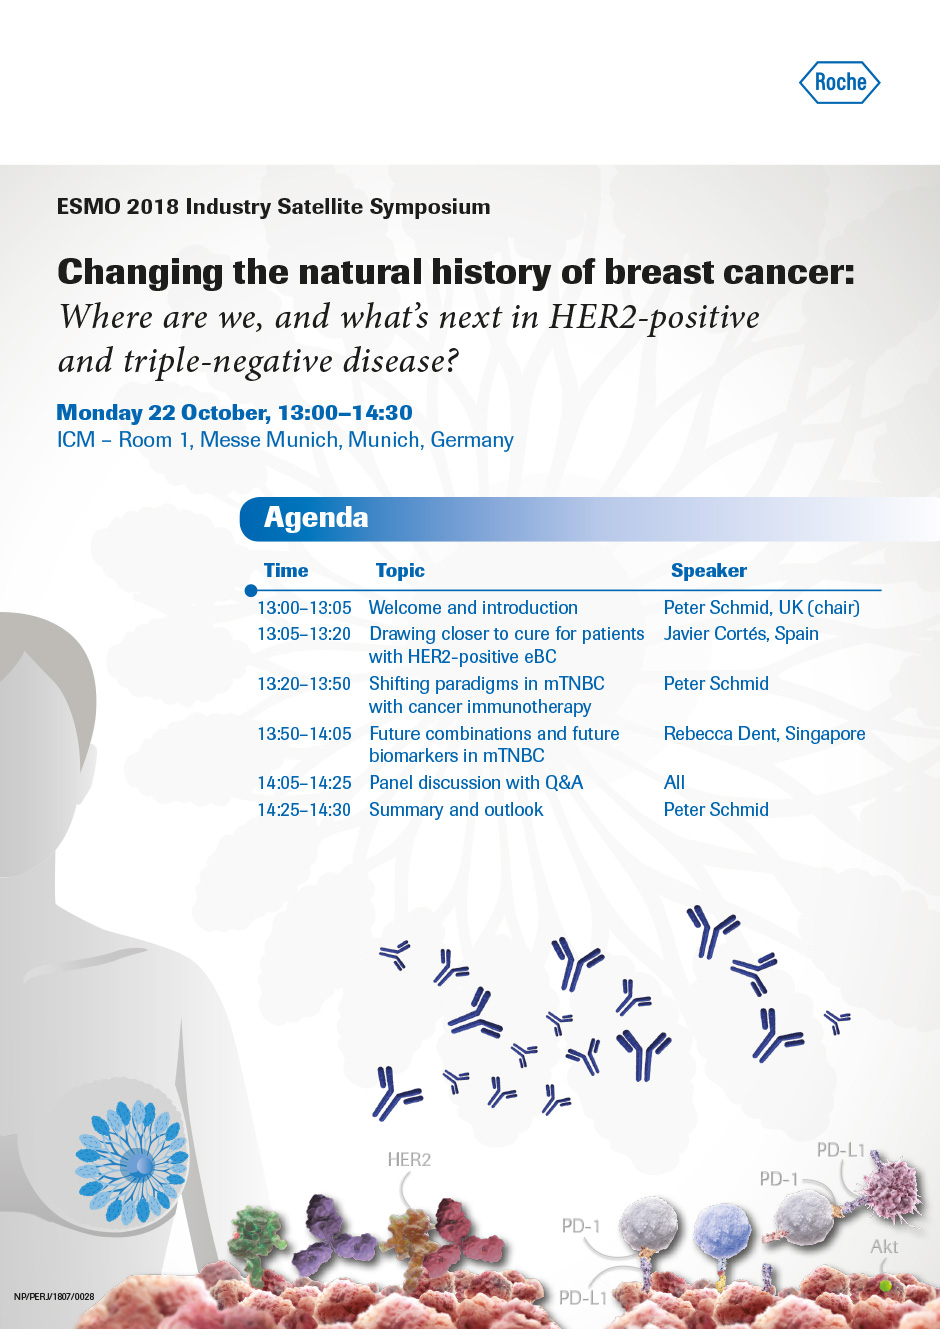 Changing the Natural History of Breast Cancer: Where are We, and What's Next in HER2-Positive and Triple-Negative Disease?